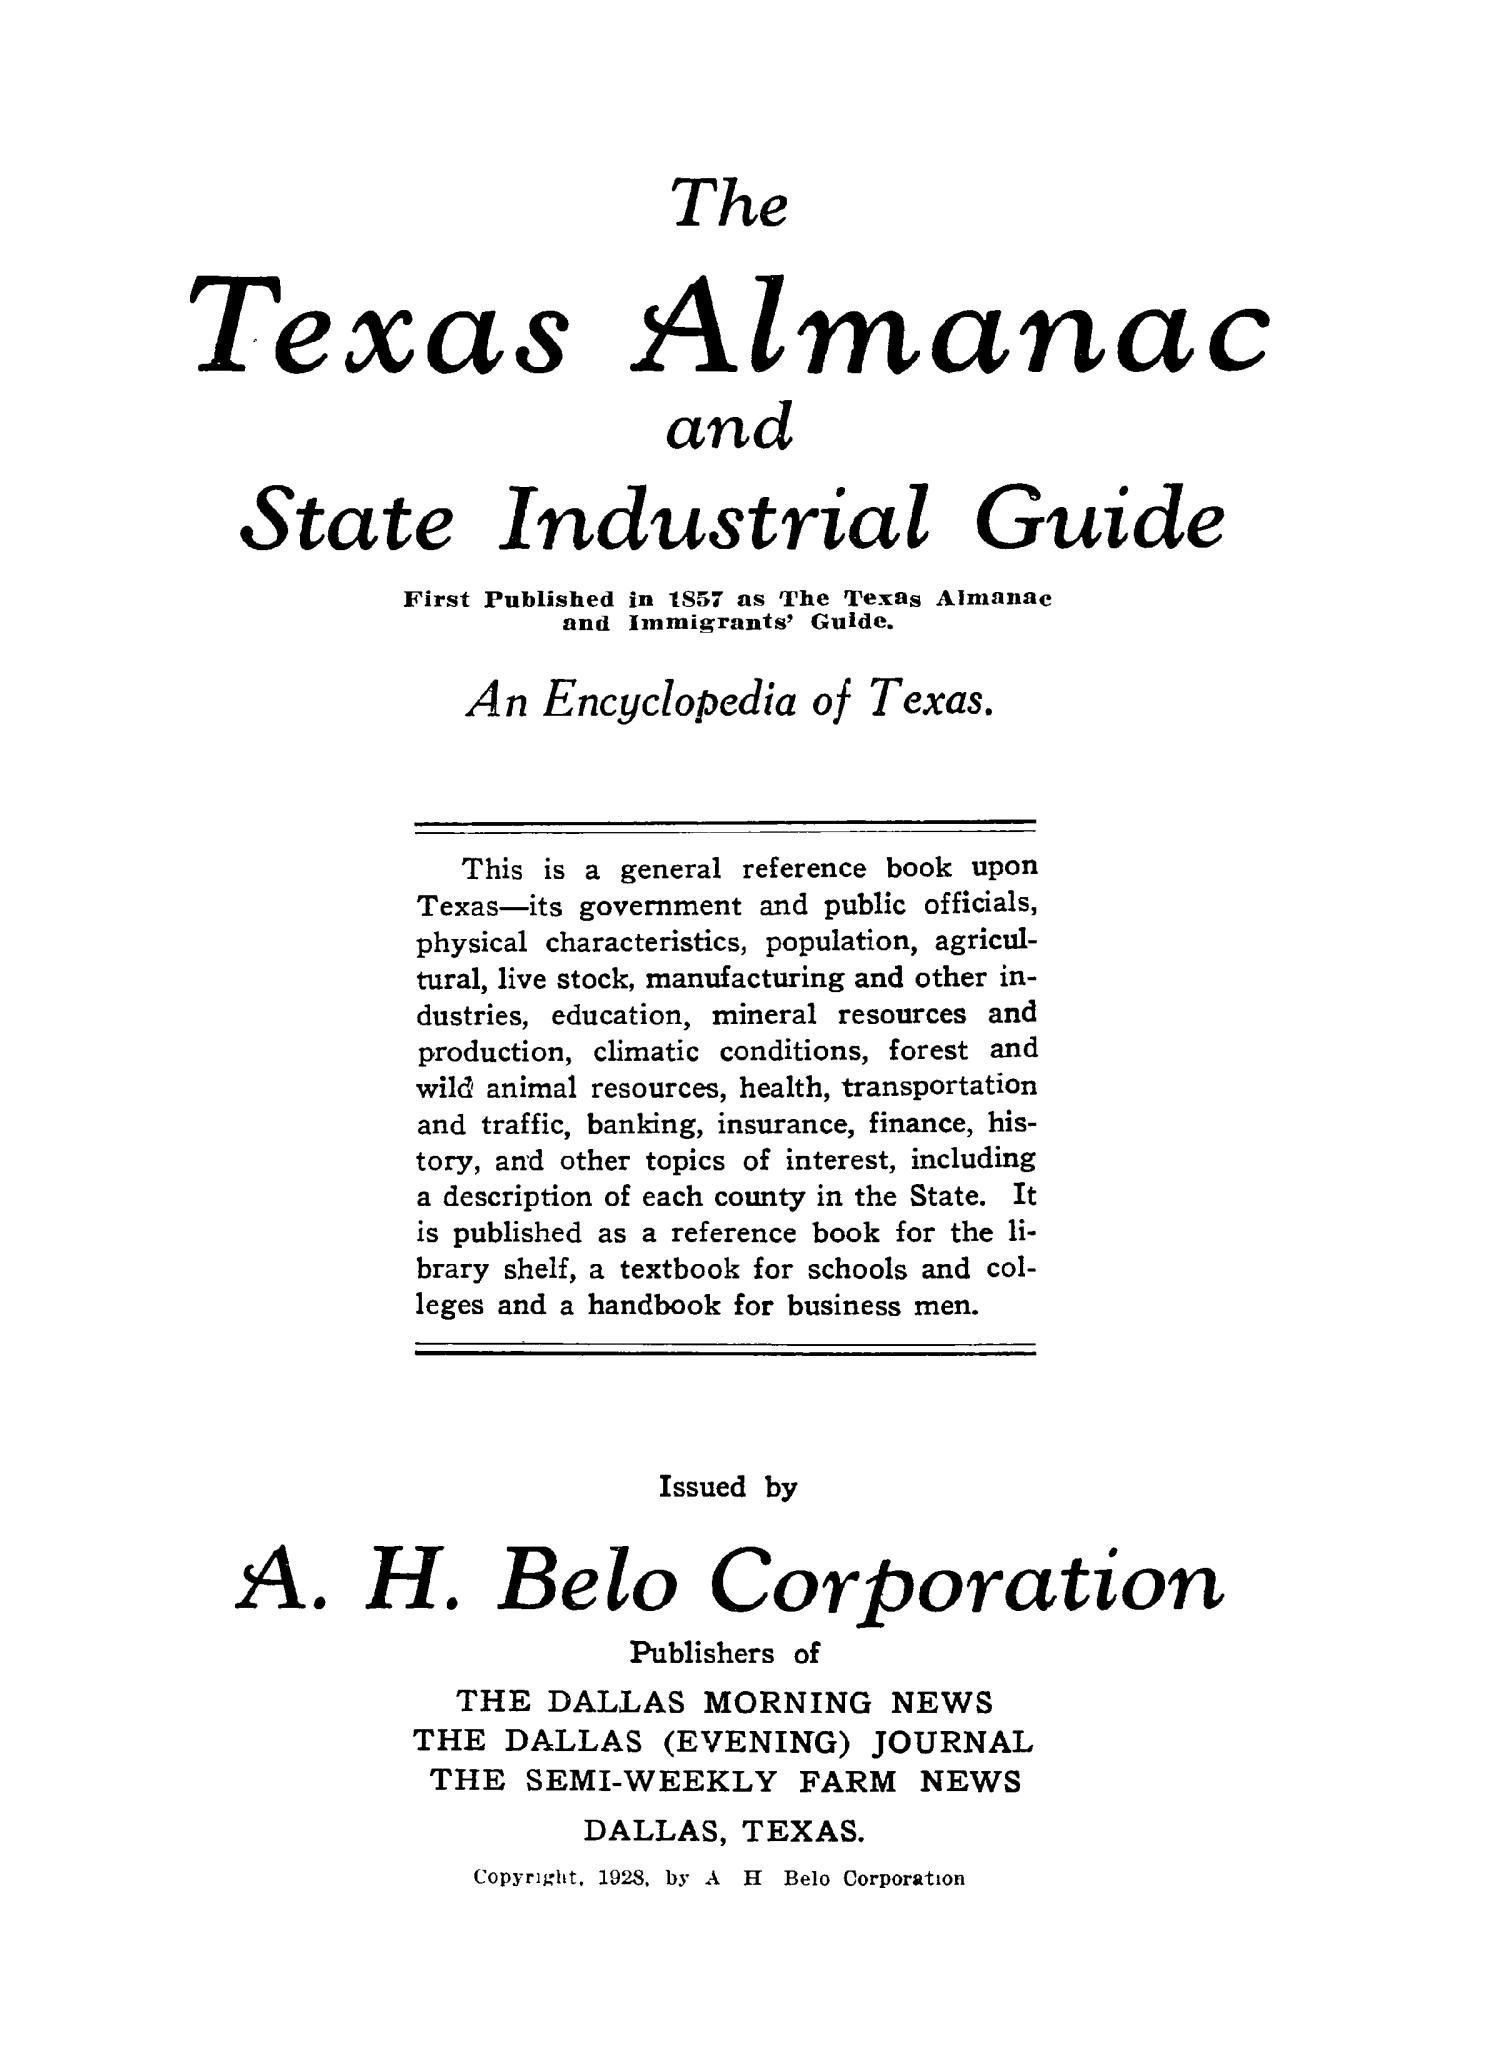 The 1928 Texas Almanac and State Industrial Guide                                                                                                      33